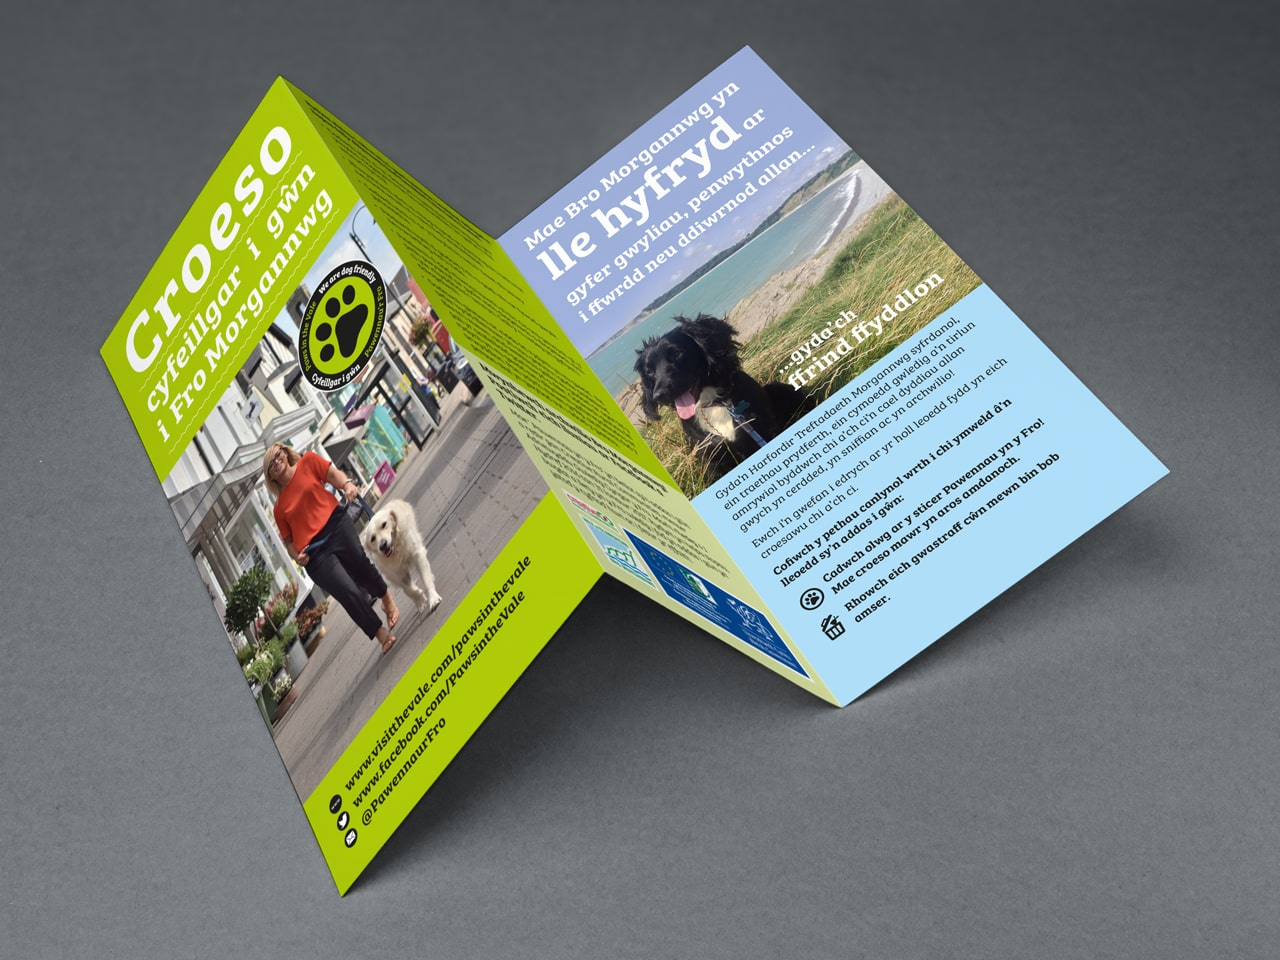 paws in the vale leaflet